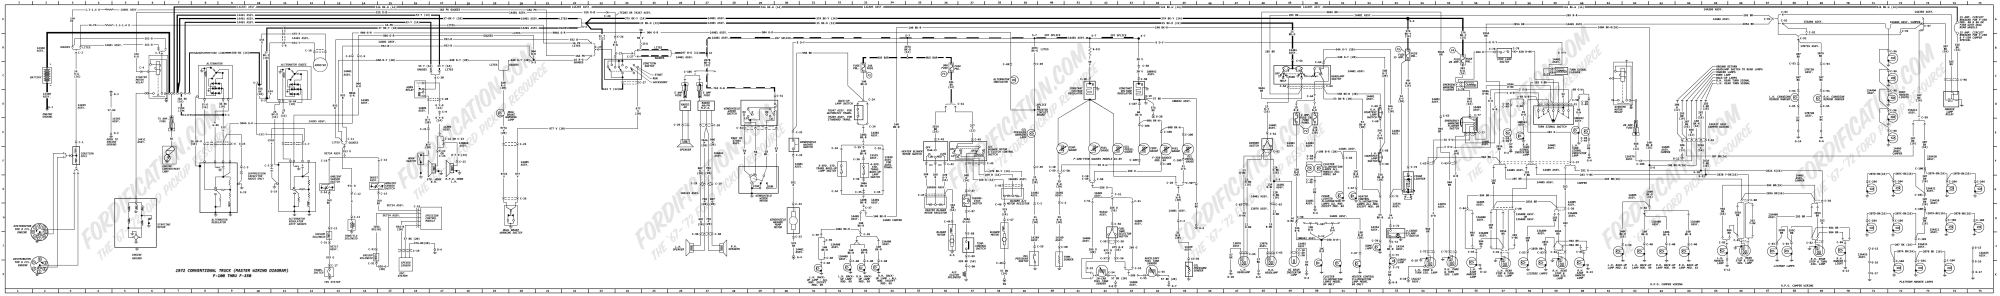 hight resolution of 1972 ford truck wiring diagrams fordification com1972 ford f 100 thru f 350 master wiring diagram